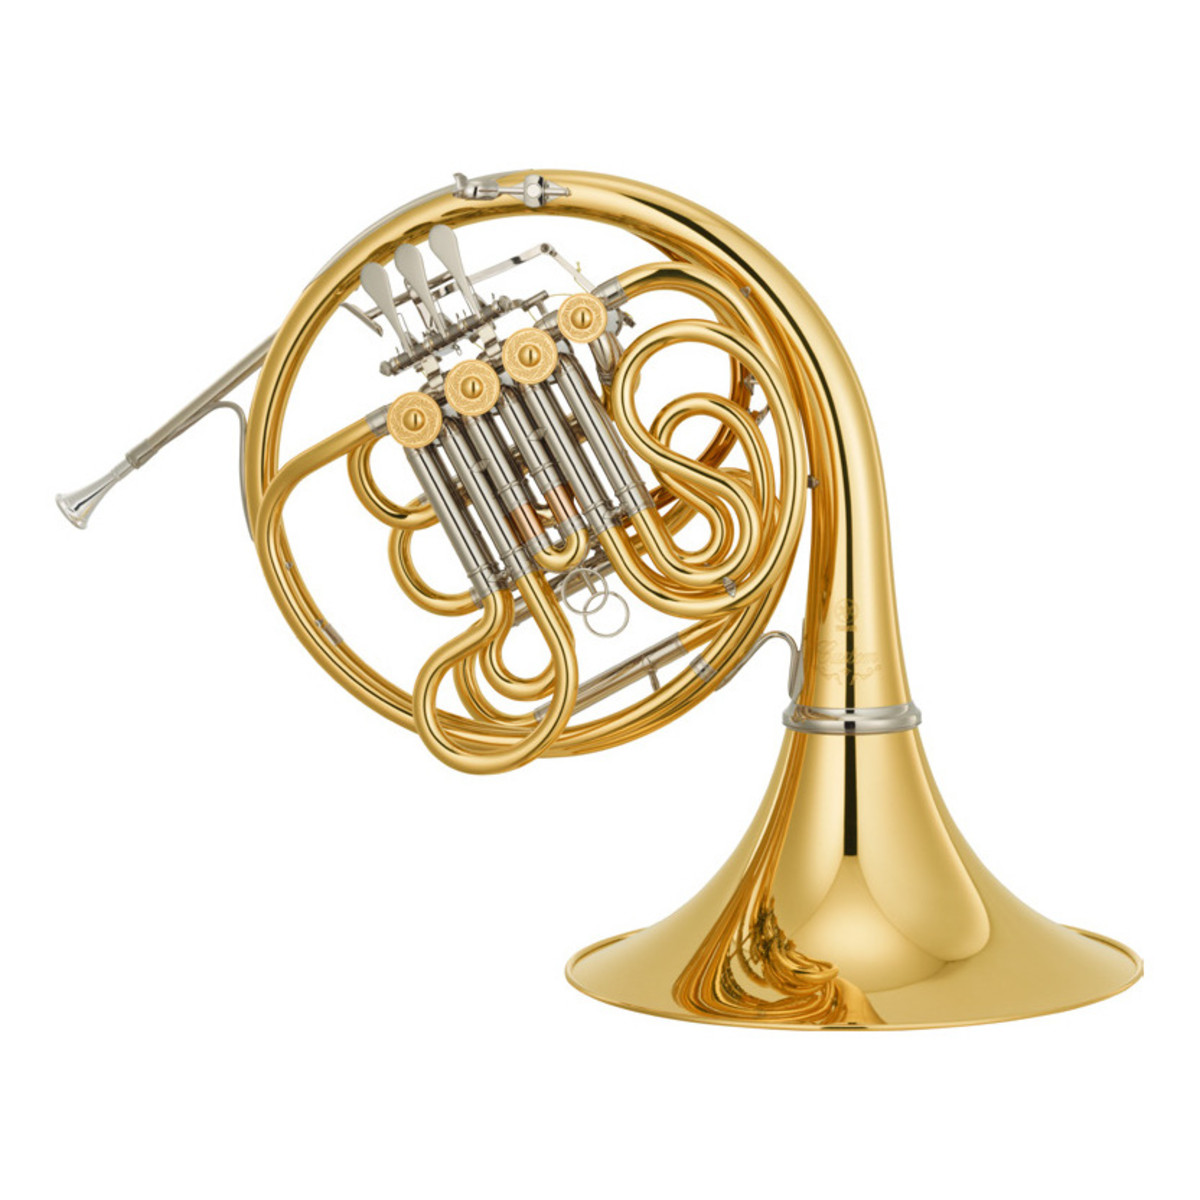 French Horn Yamaha